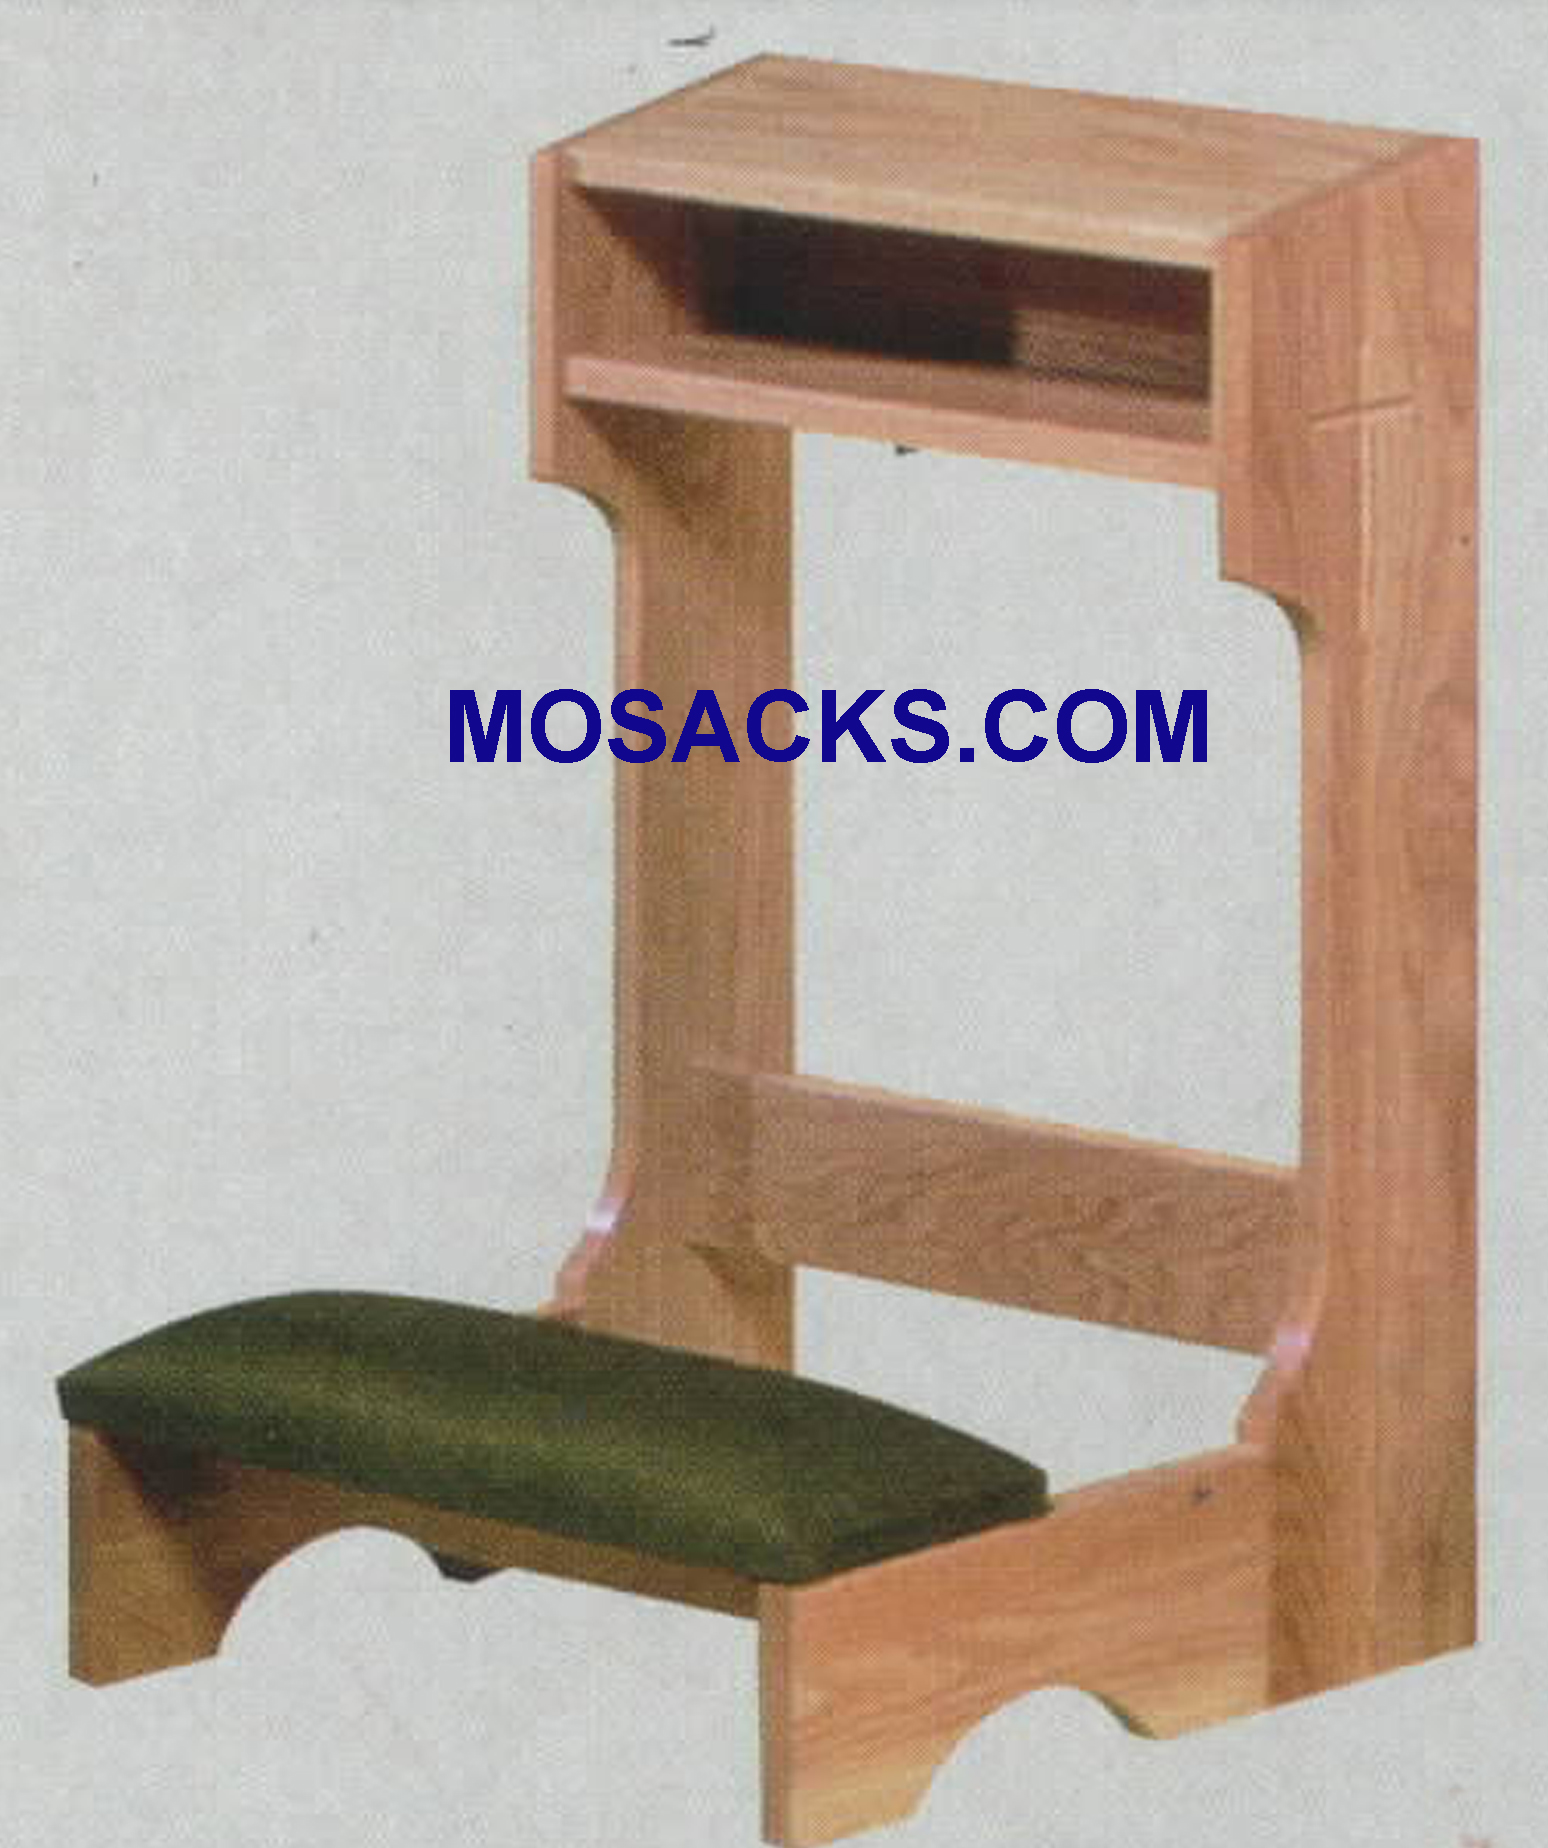 Prie Dieu upcharge for converting to a folding kneeler 2522F